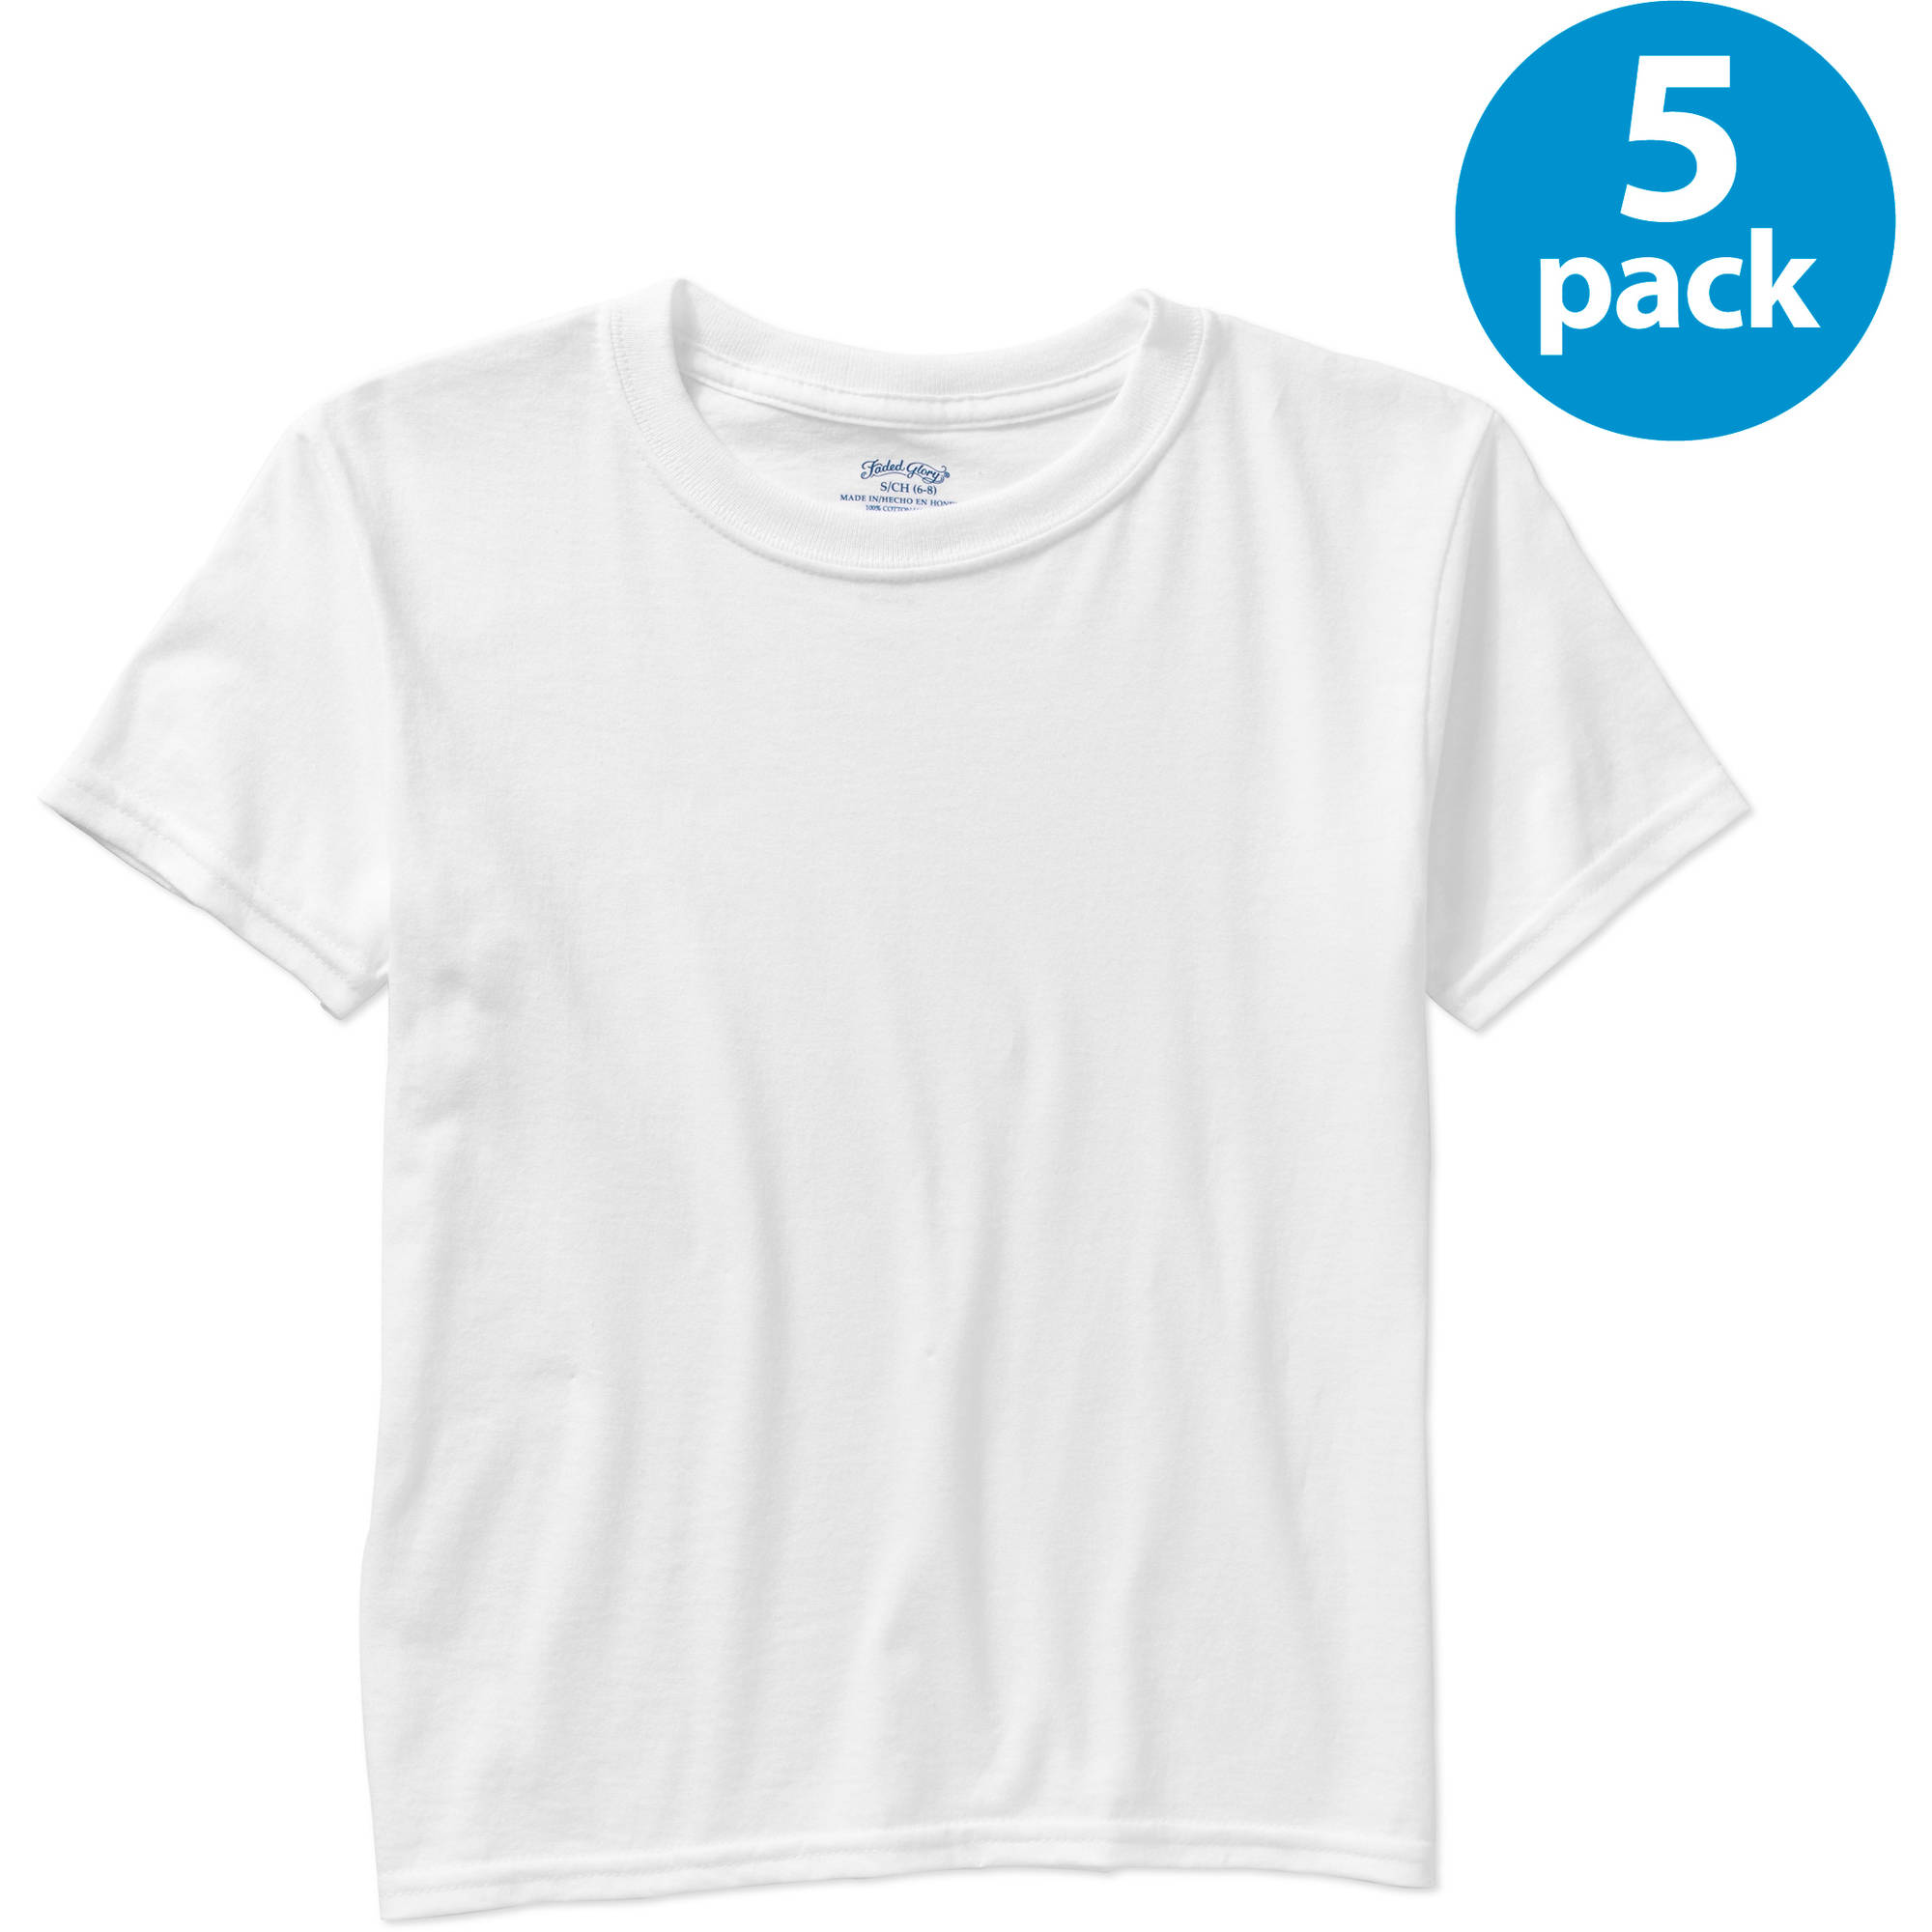 Faded Glory Boys Crew T Shirt Pack Of 5 Walmart